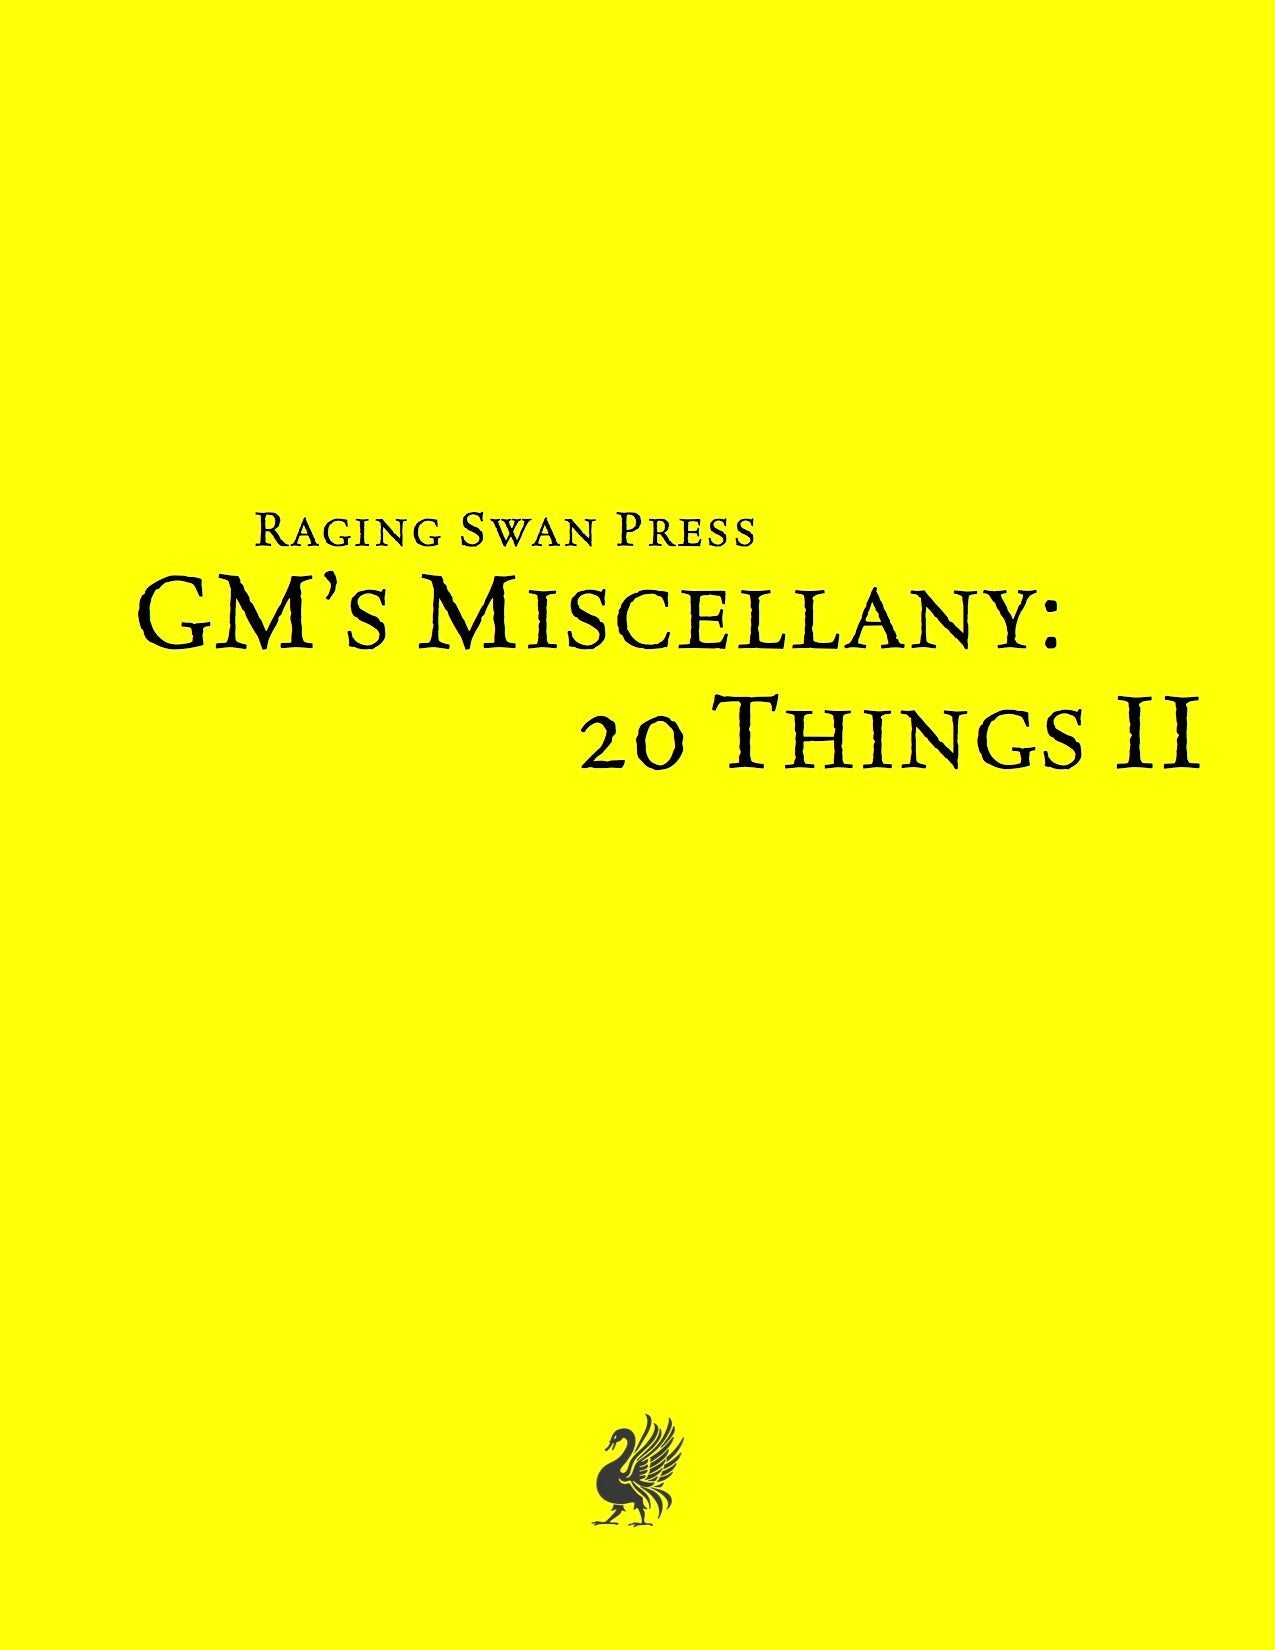 GM's Miscellany: 20 Things Vol. II (SNE)